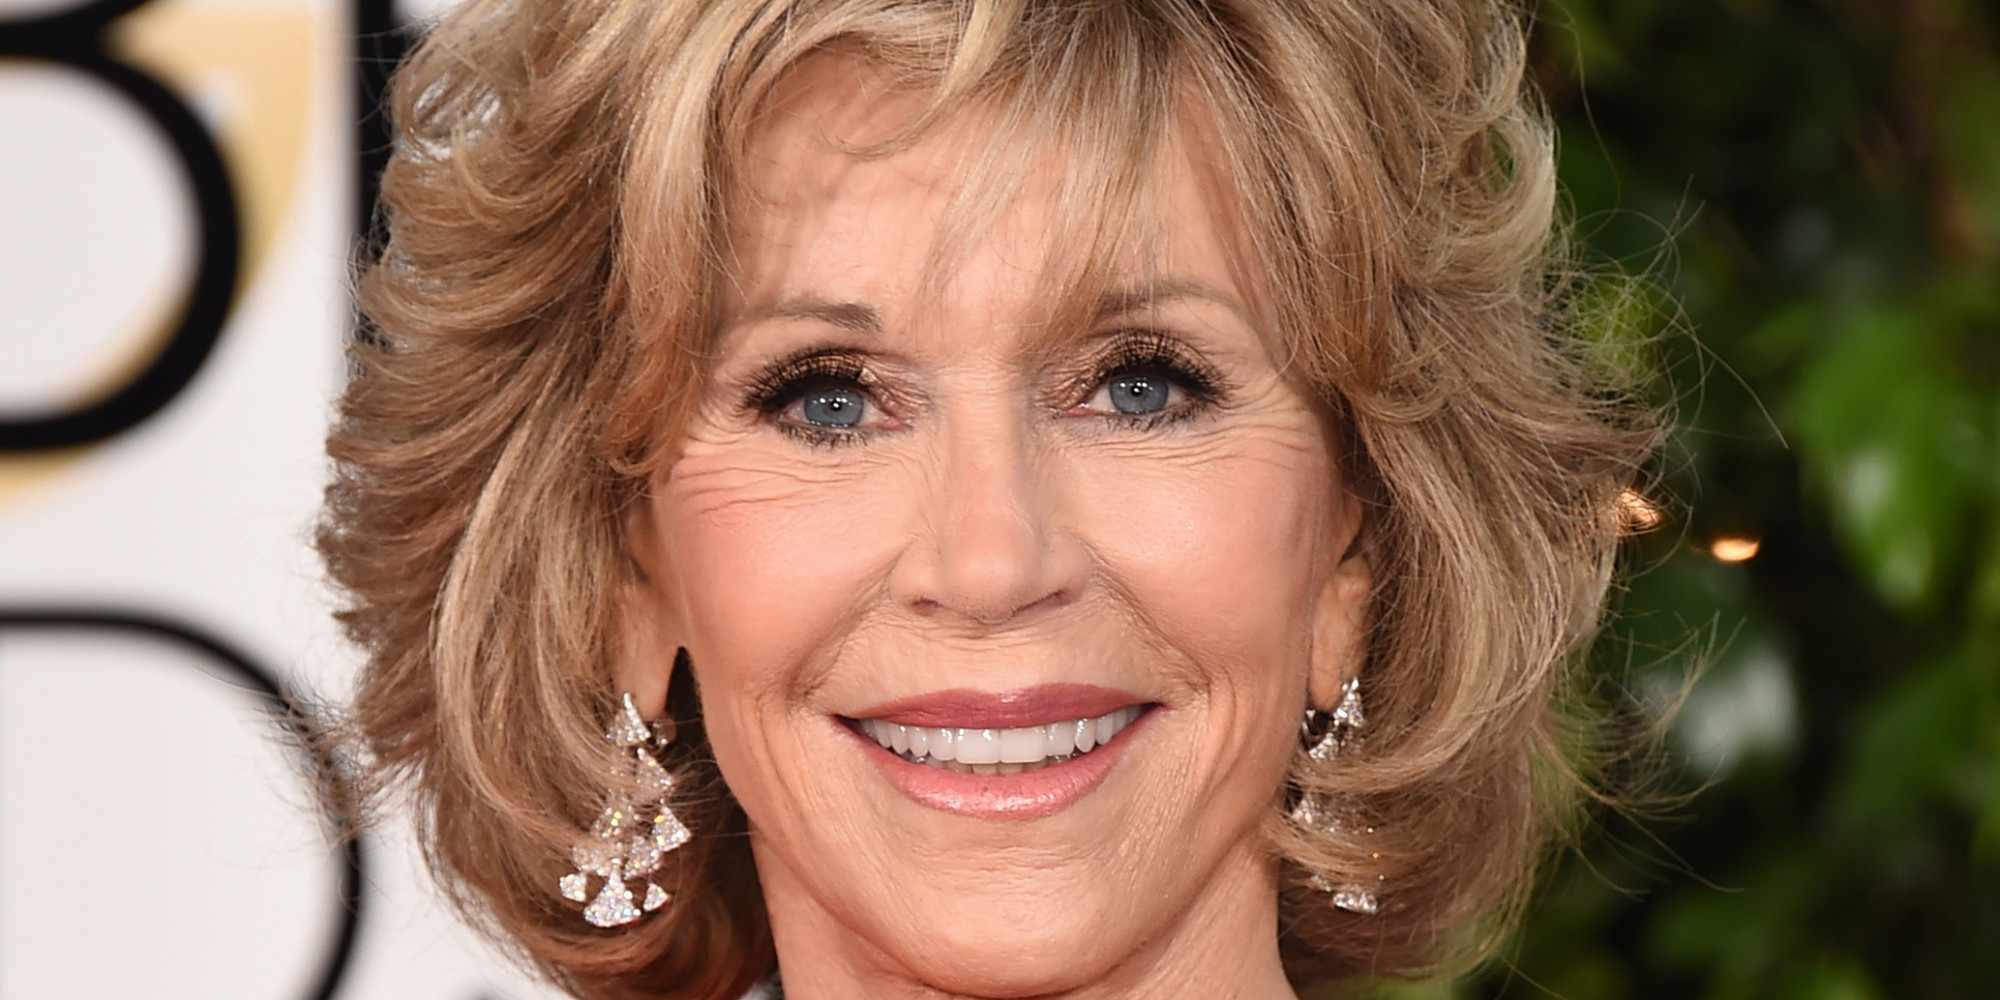 Jane Fonda arrives at the 72nd annual Golden Globe Awards at the Beverly Hilton Hotel on Sunday, Jan. 11, 2015, in Beverly Hills, Calif. (Photo by Jordan Strauss/Invision/AP)